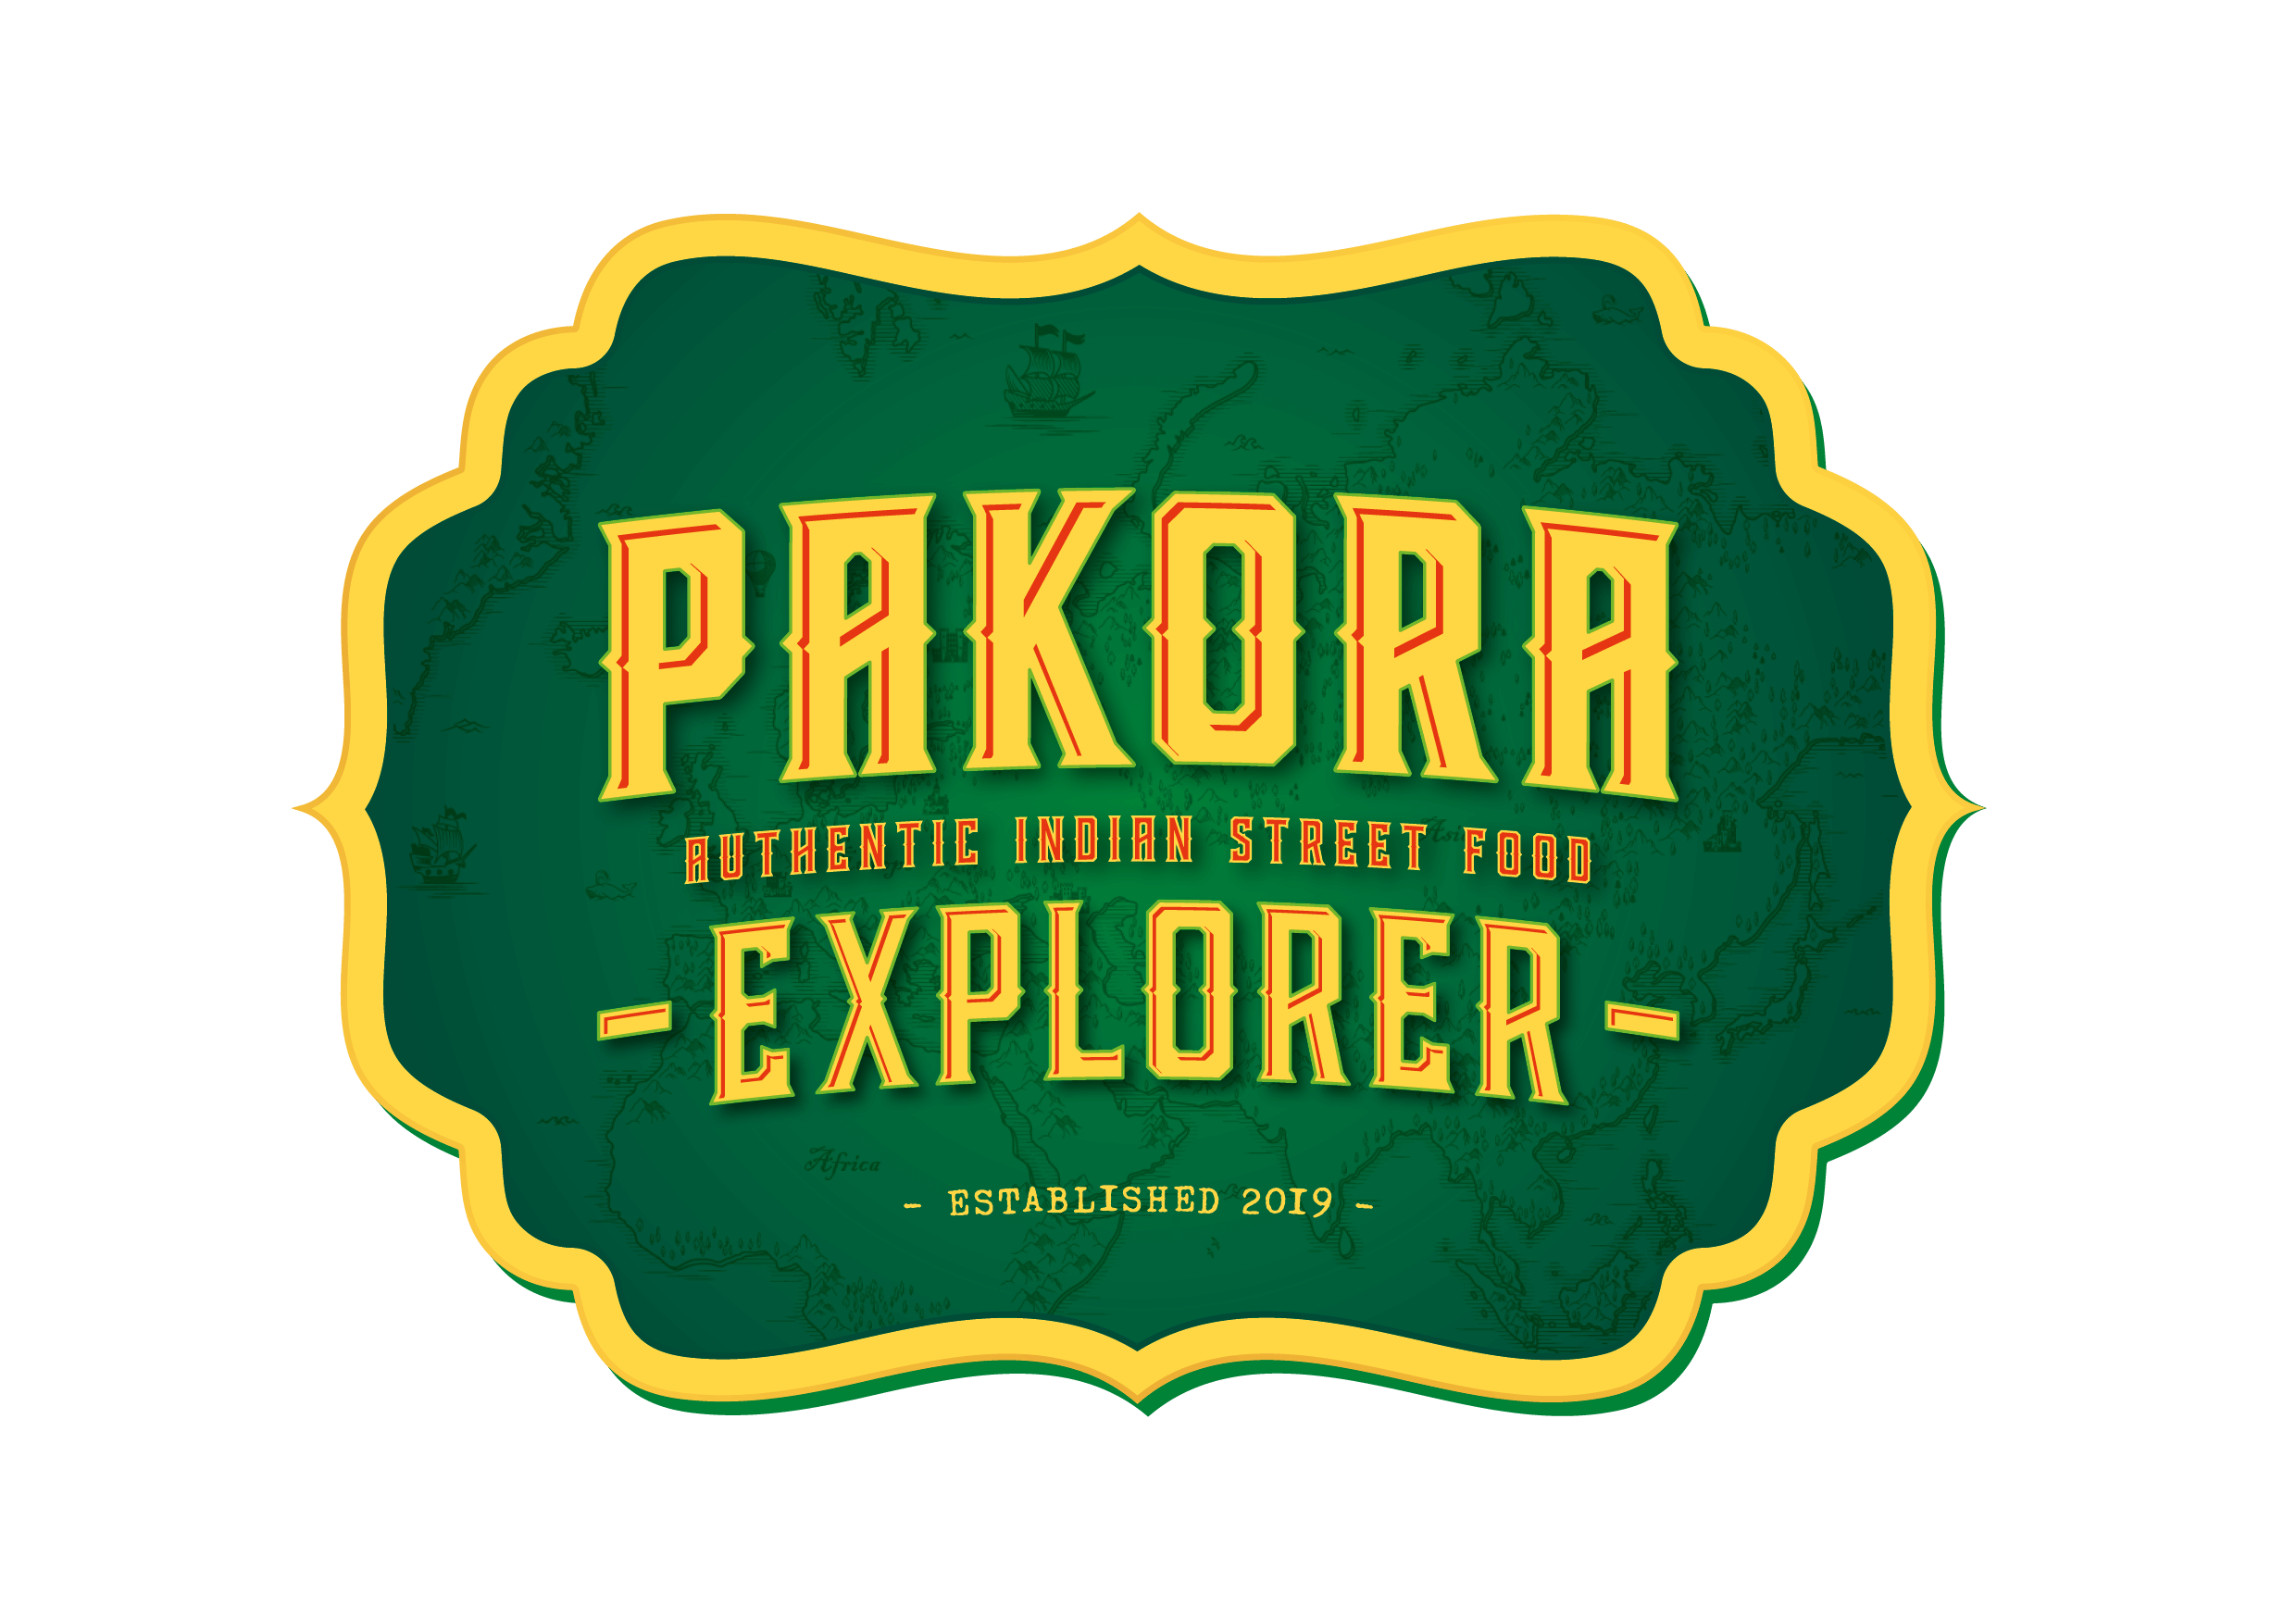 The Pakora Explorer